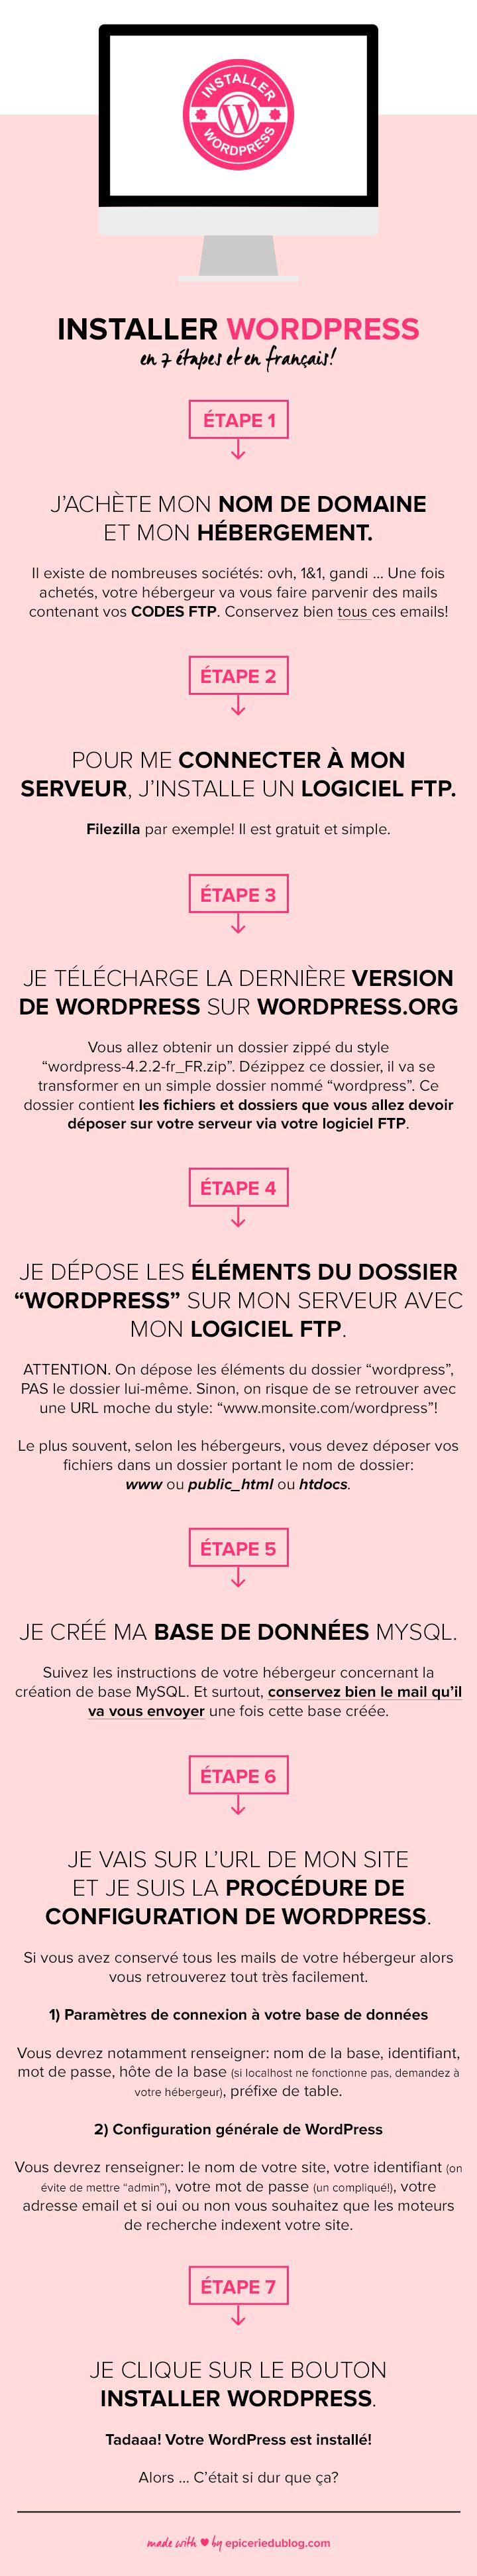 #Infographie: Installer #WordPress, en images, en français, en 7 étapes…